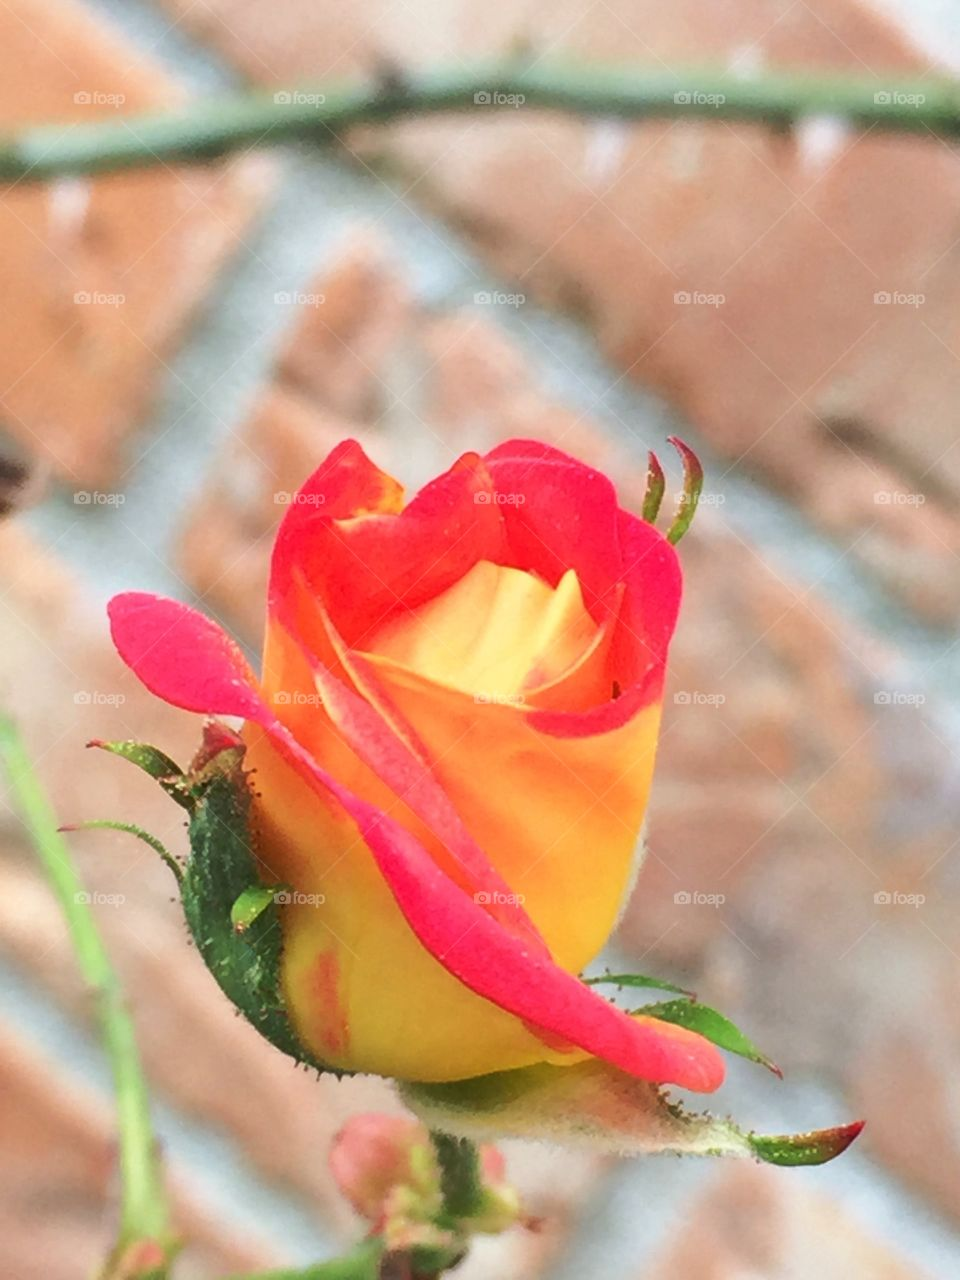 Orange and yellow rose bud in the garden